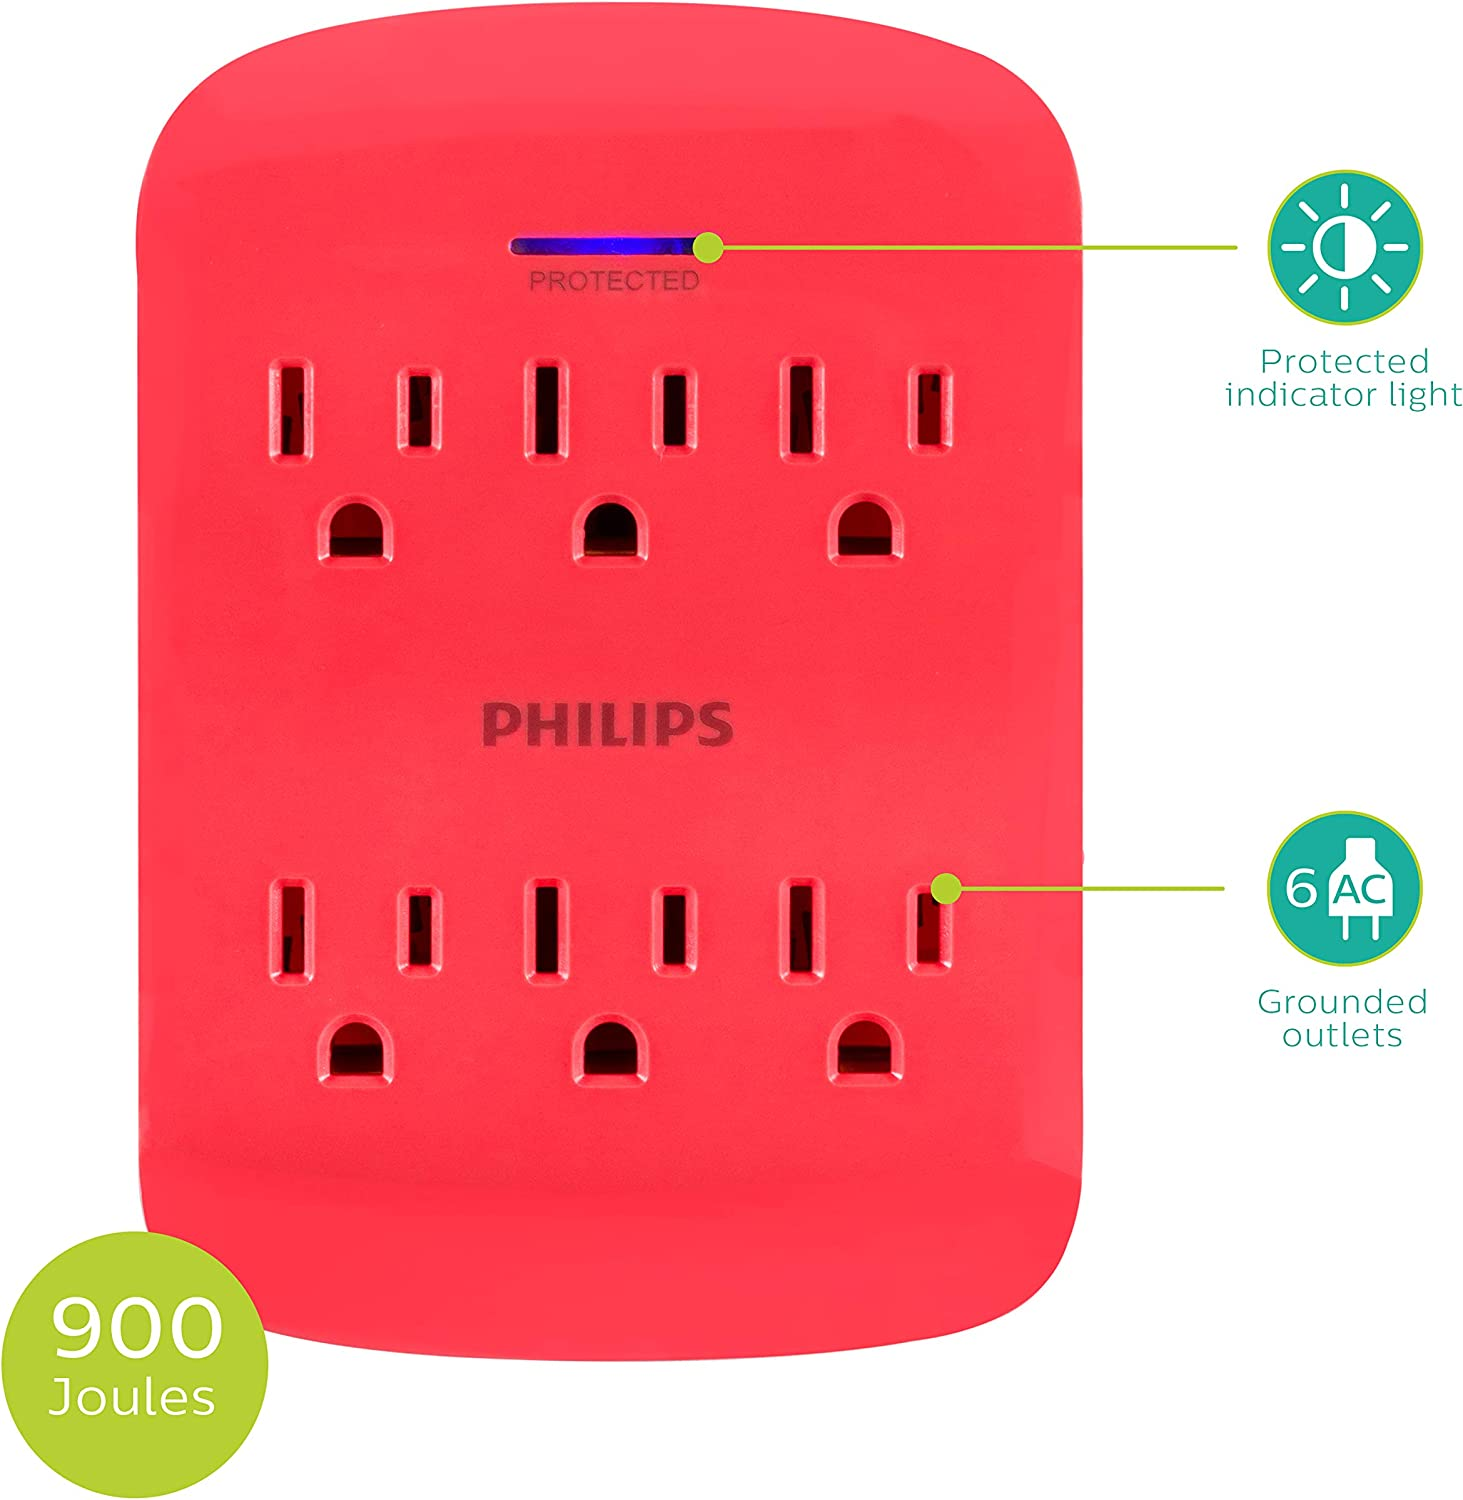 SPP3466BC//37 Protection Indicator LED Light Space Saving Design 900 Joules 3-Prong PHILIPS 6-Outlet Surge Protector Tap 2 Pack Black